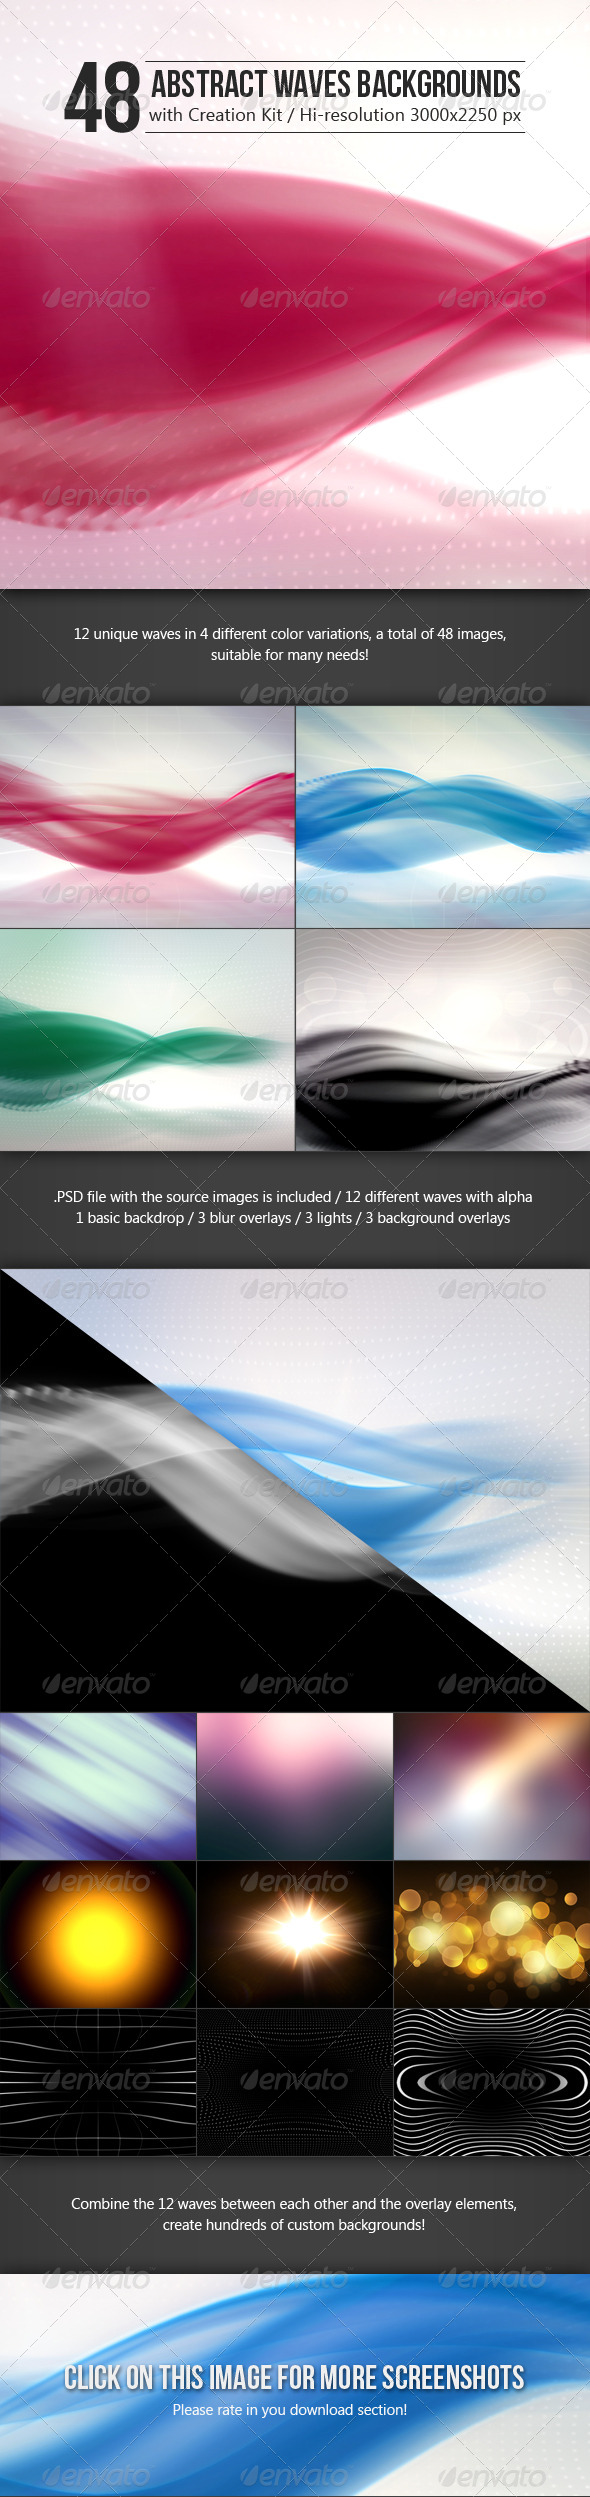 48 Abstract Waves Backgrounds with Creation Kit - Abstract Backgrounds